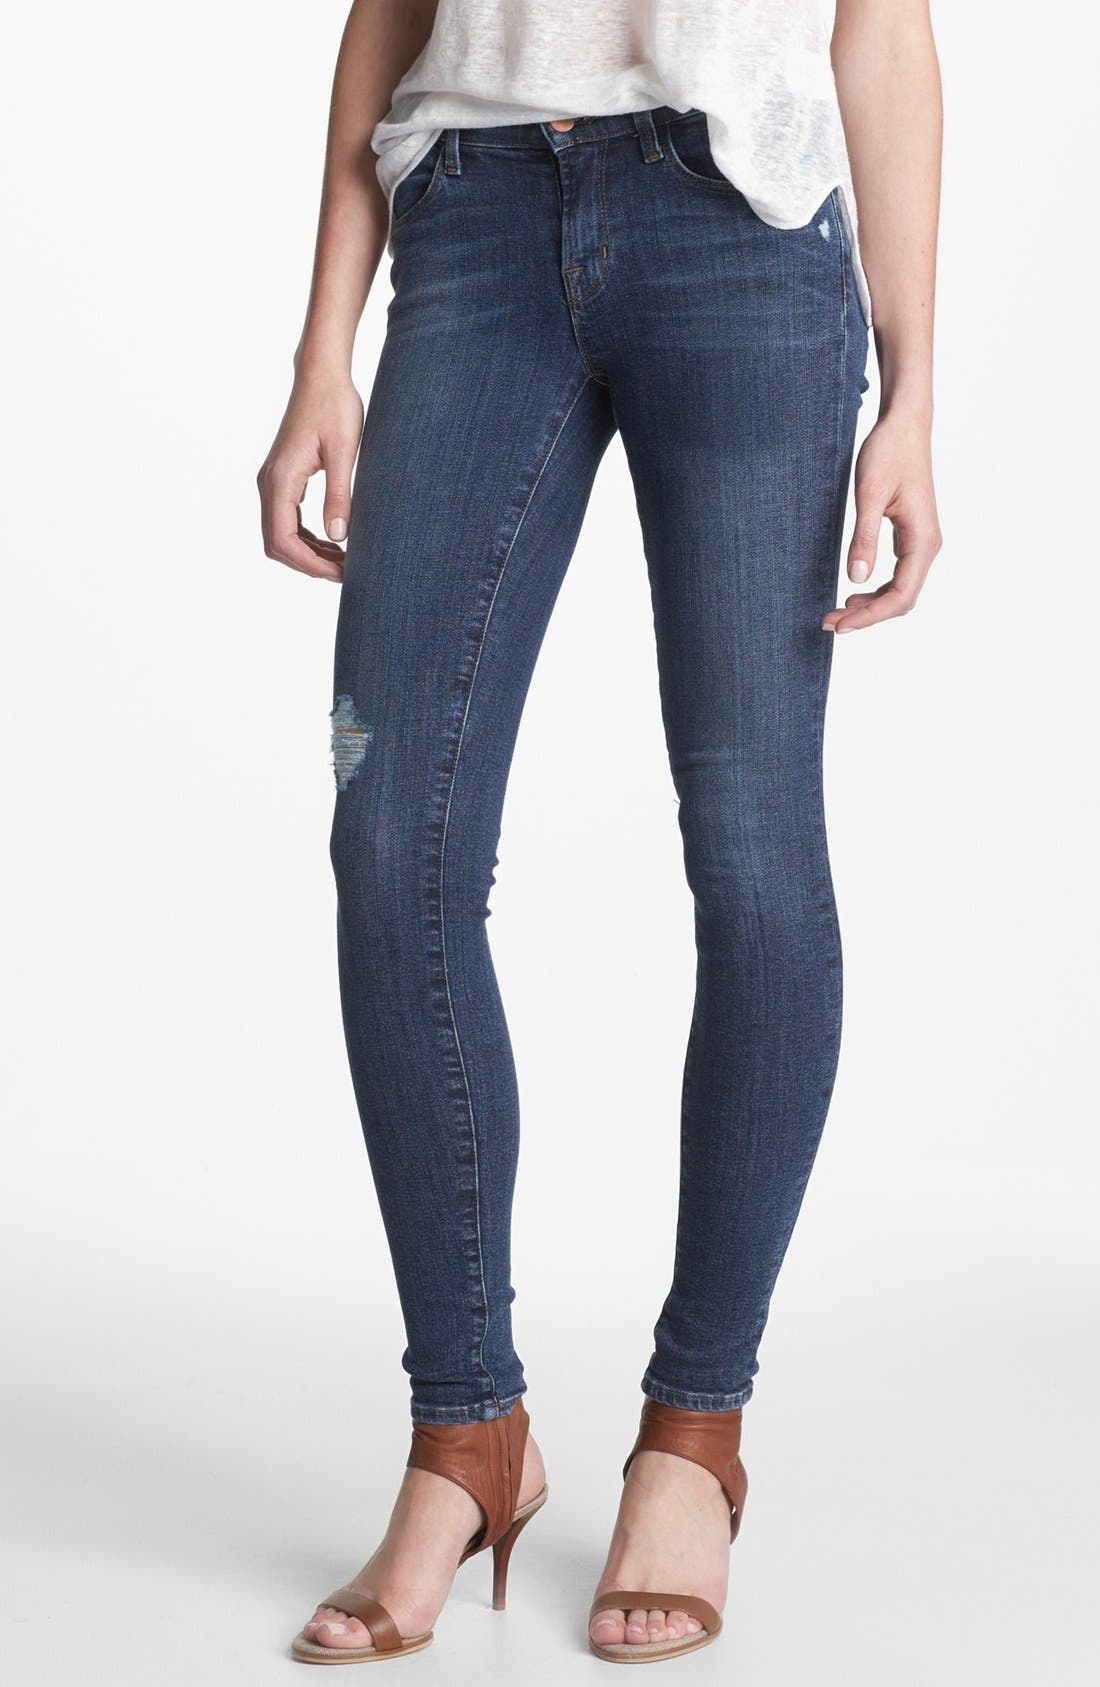 Alternate Image 1 Selected - J Brand '620' Mid-Rise Skinny Jeans (Quantum)